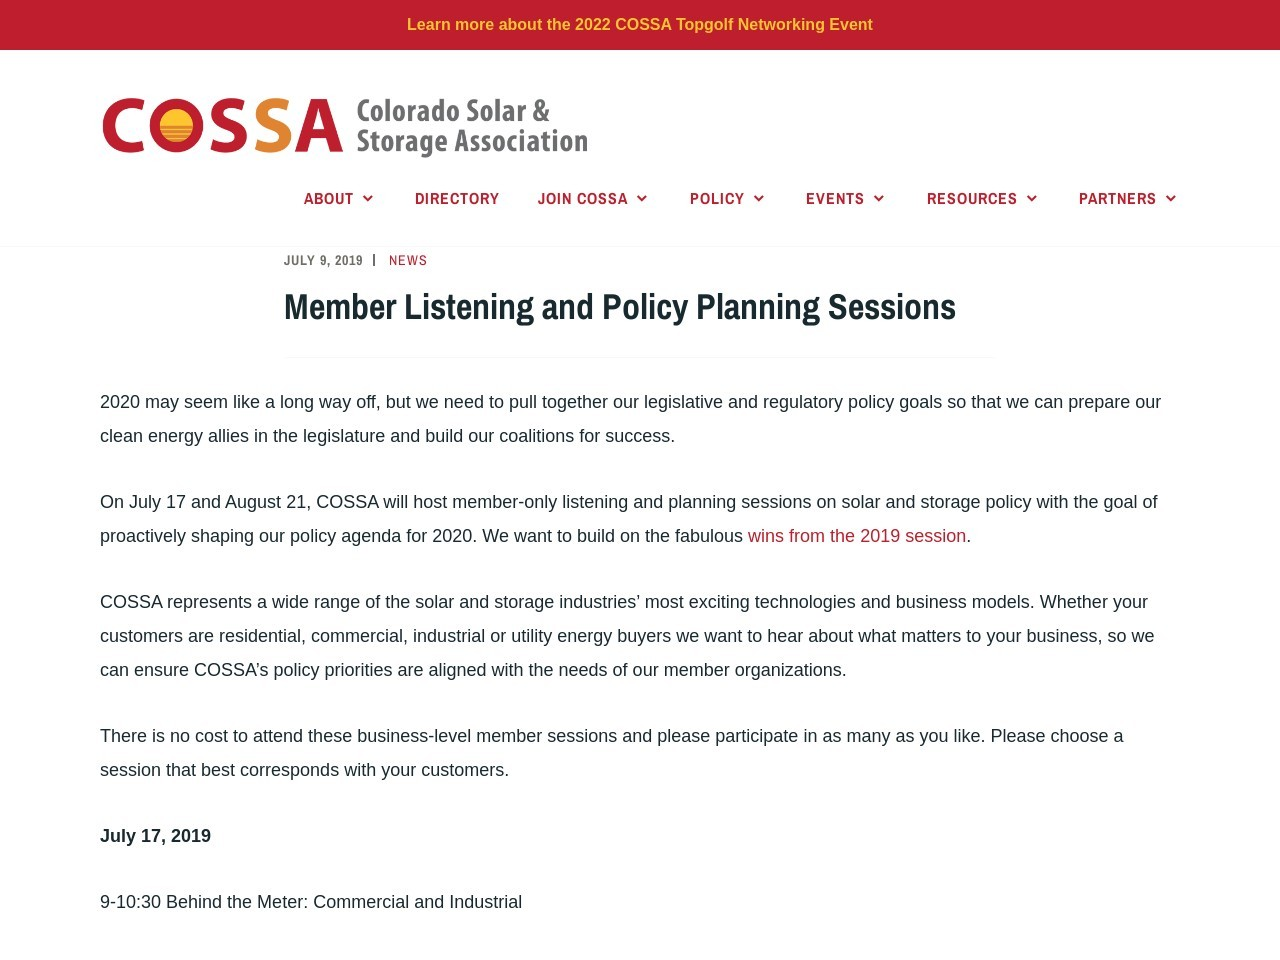 Member Listening and Policy Planning Sessions